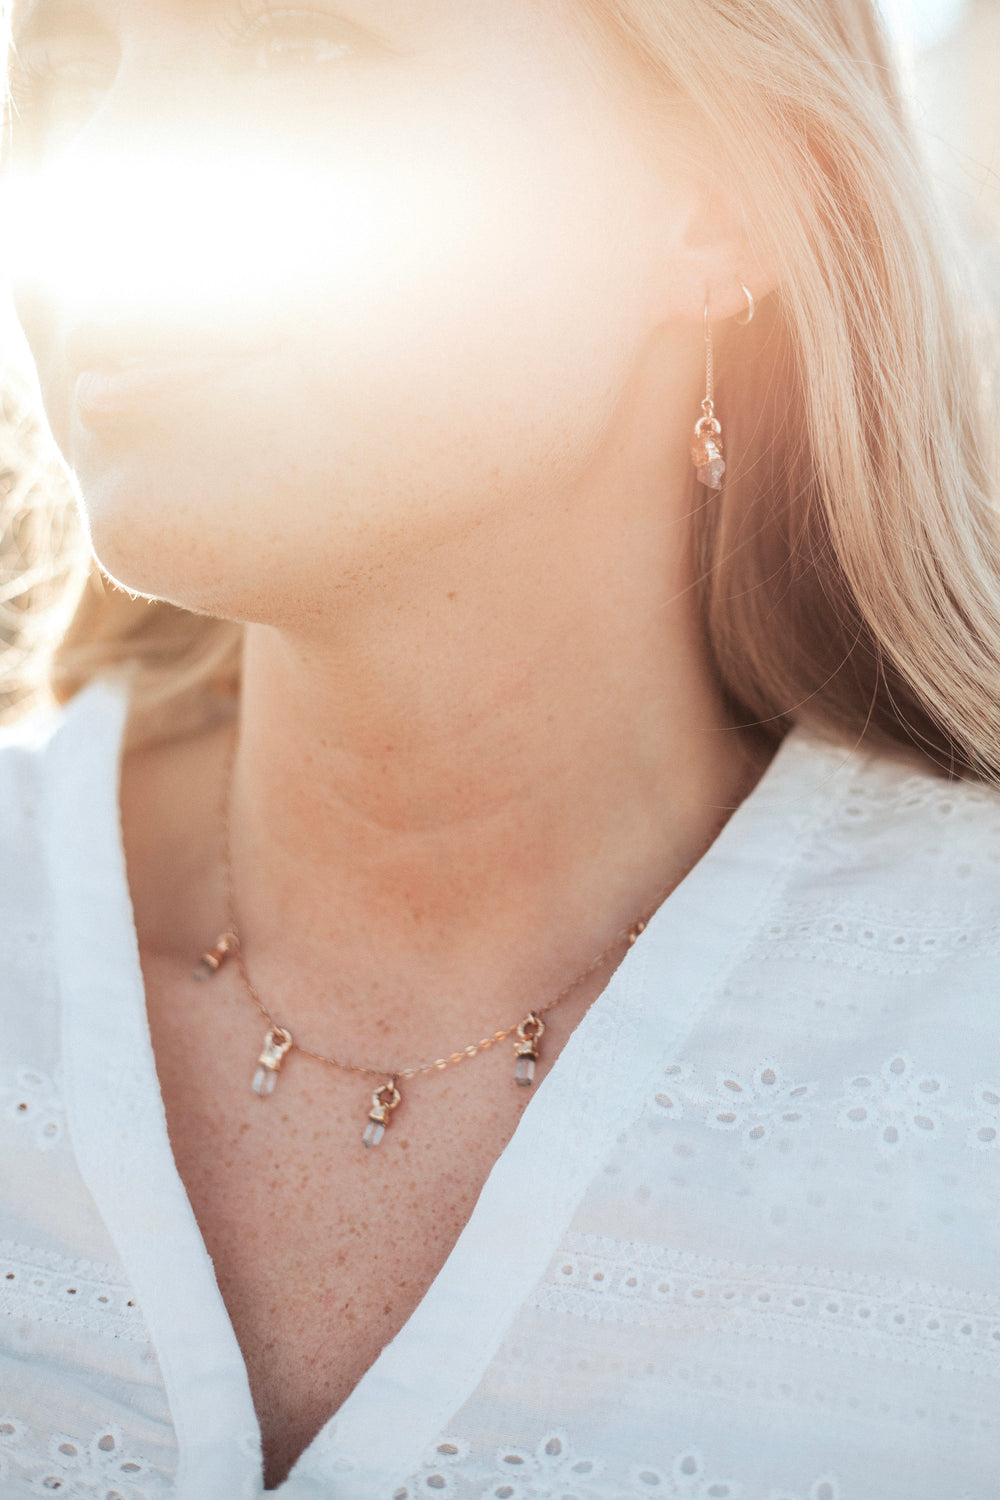 April & Angel Baby Raindrops Necklace // Diamond Quartz in Rose Gold, Gold, or Silver